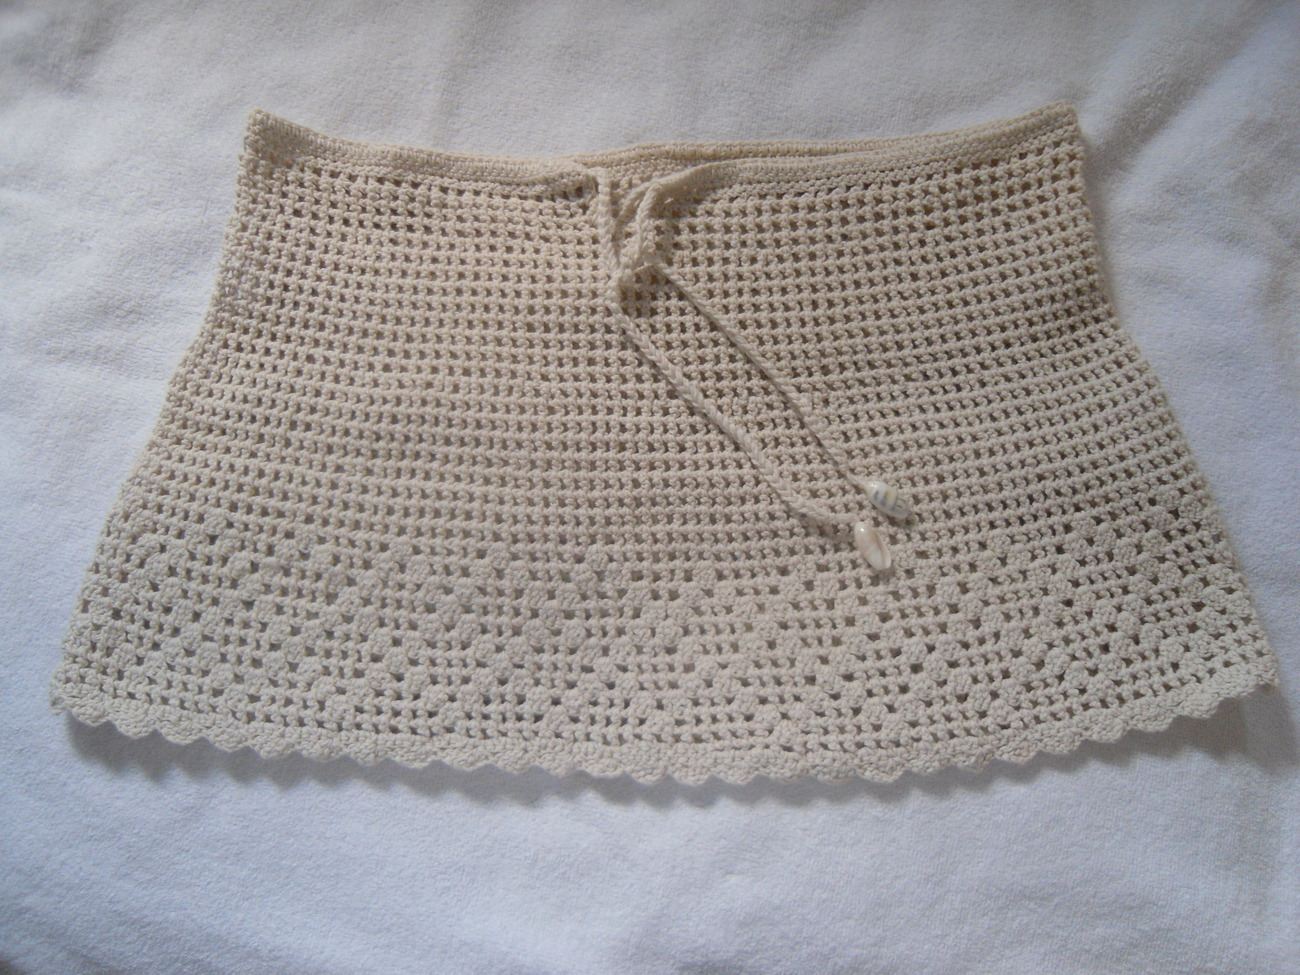 Crochet_beach_cover_up_skirt_front